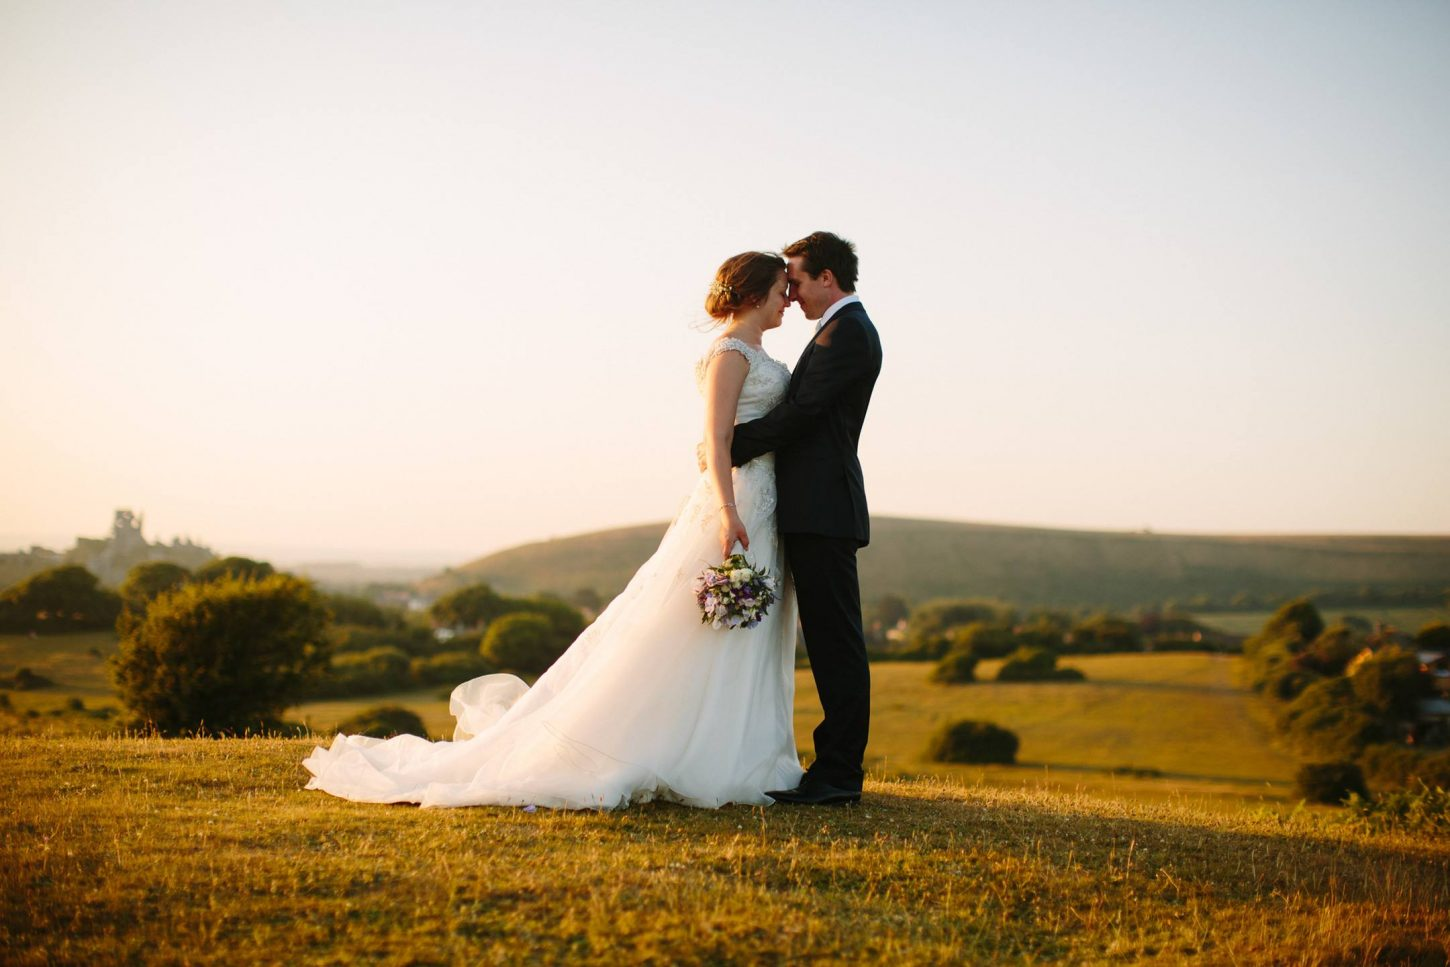 Corfe-Castle-Dorset-Summer-Wedding-Golden-Hour-Bride-Groom-Nisha-Haq-Photography